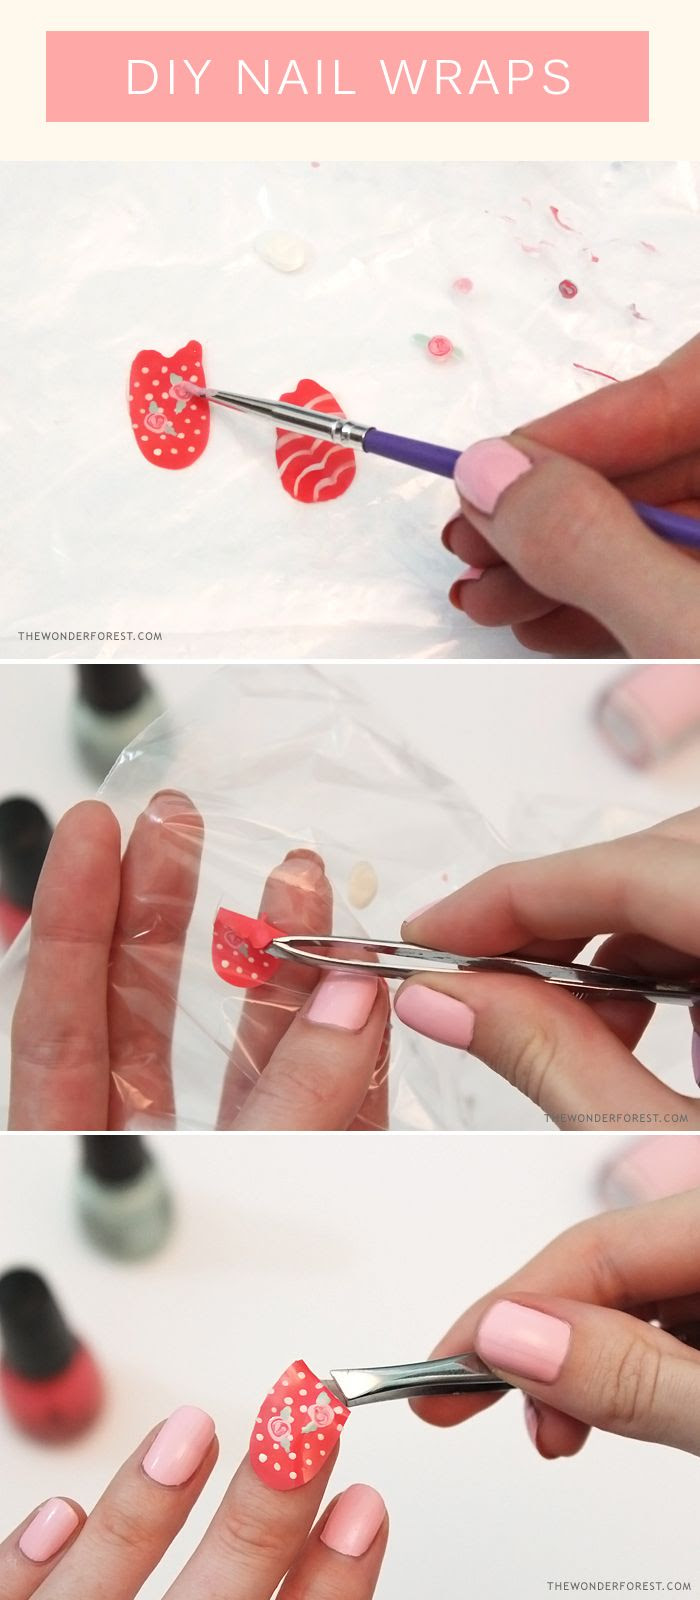 Make your own nail wraps with nail polish...x